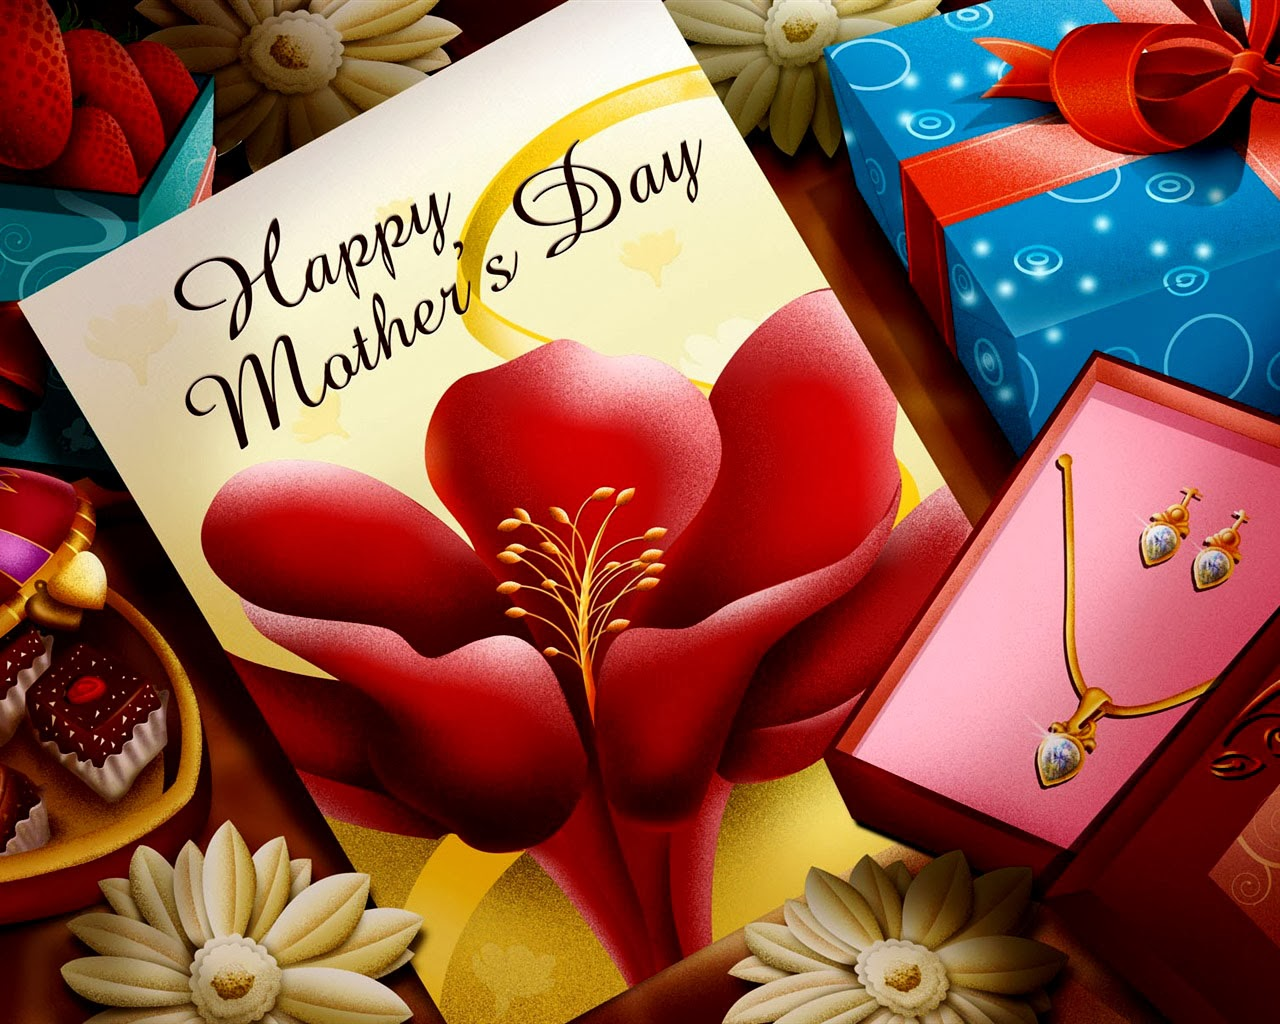 Mothers Day Wallpapers, Mothers Day Wallpapers hd, Mothers Day images